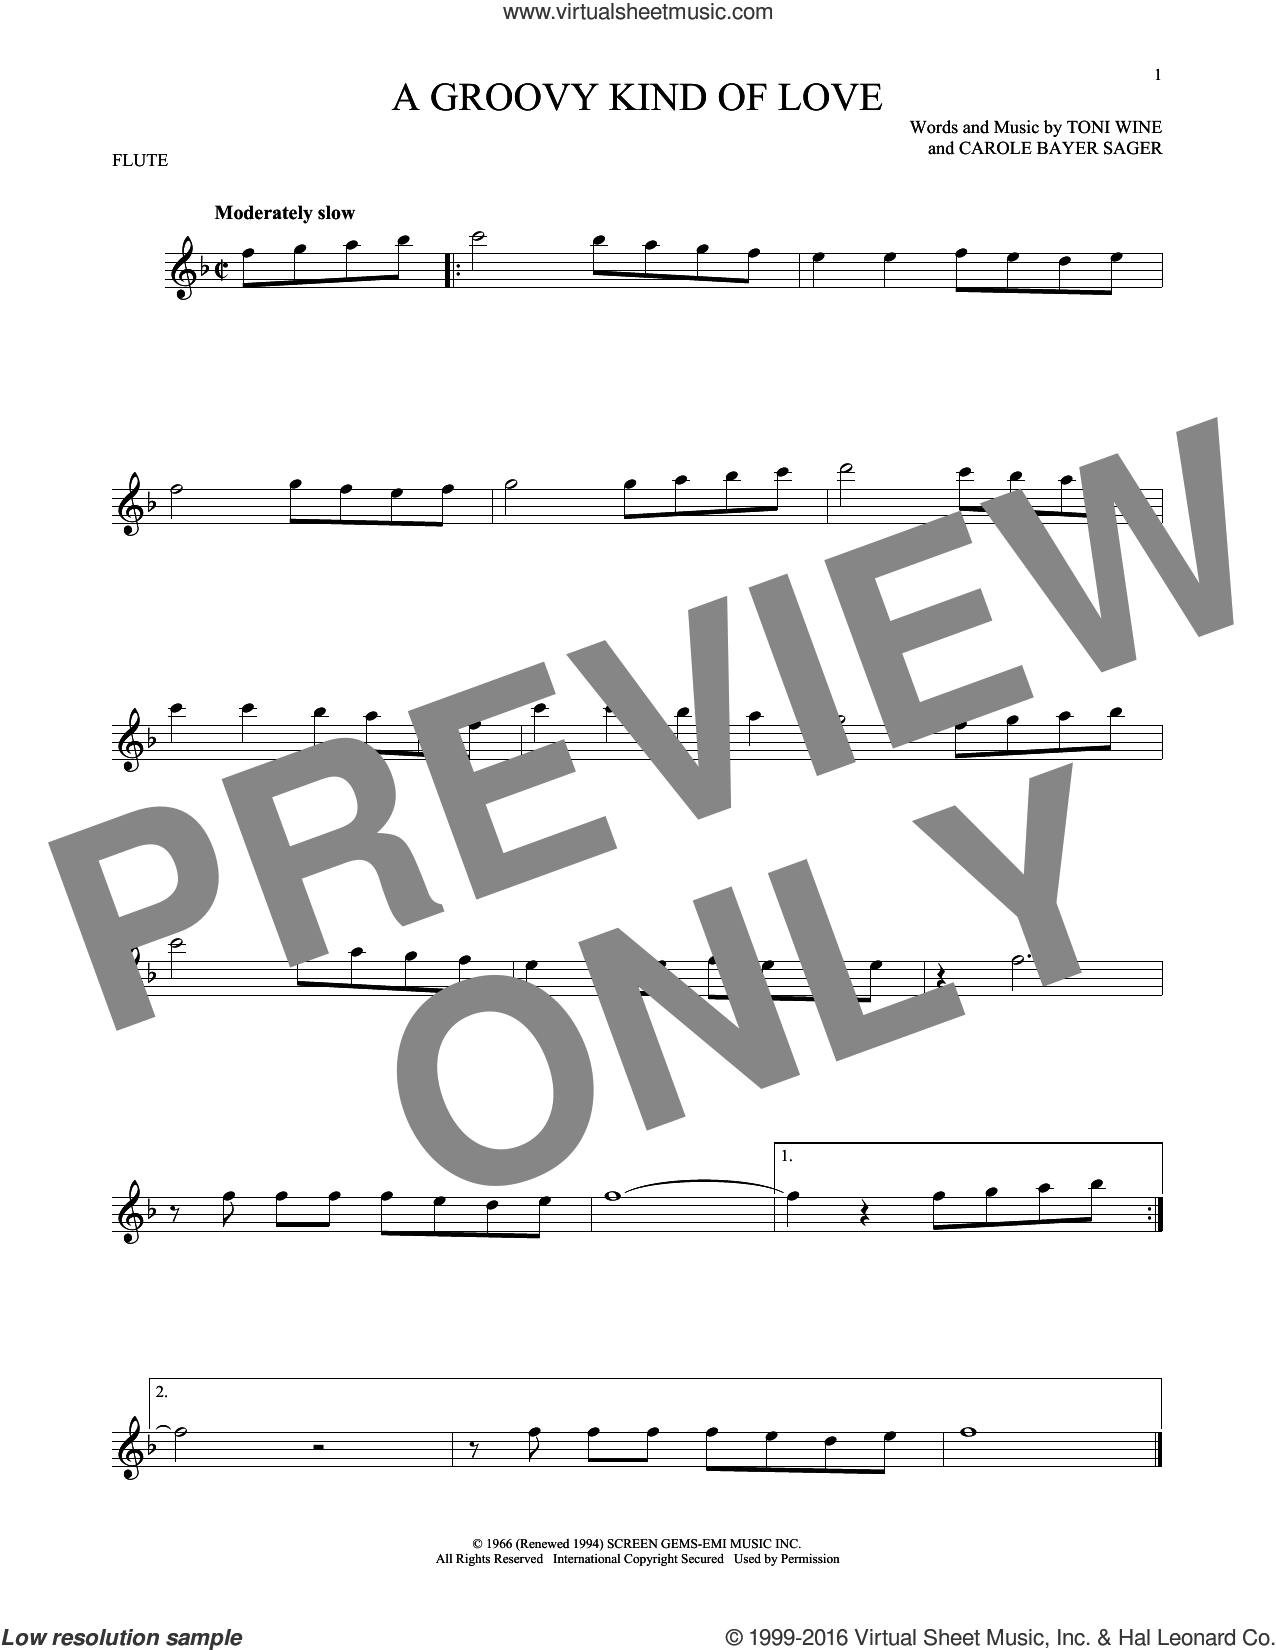 A Groovy Kind Of Love sheet music for flute solo by Toni Wine